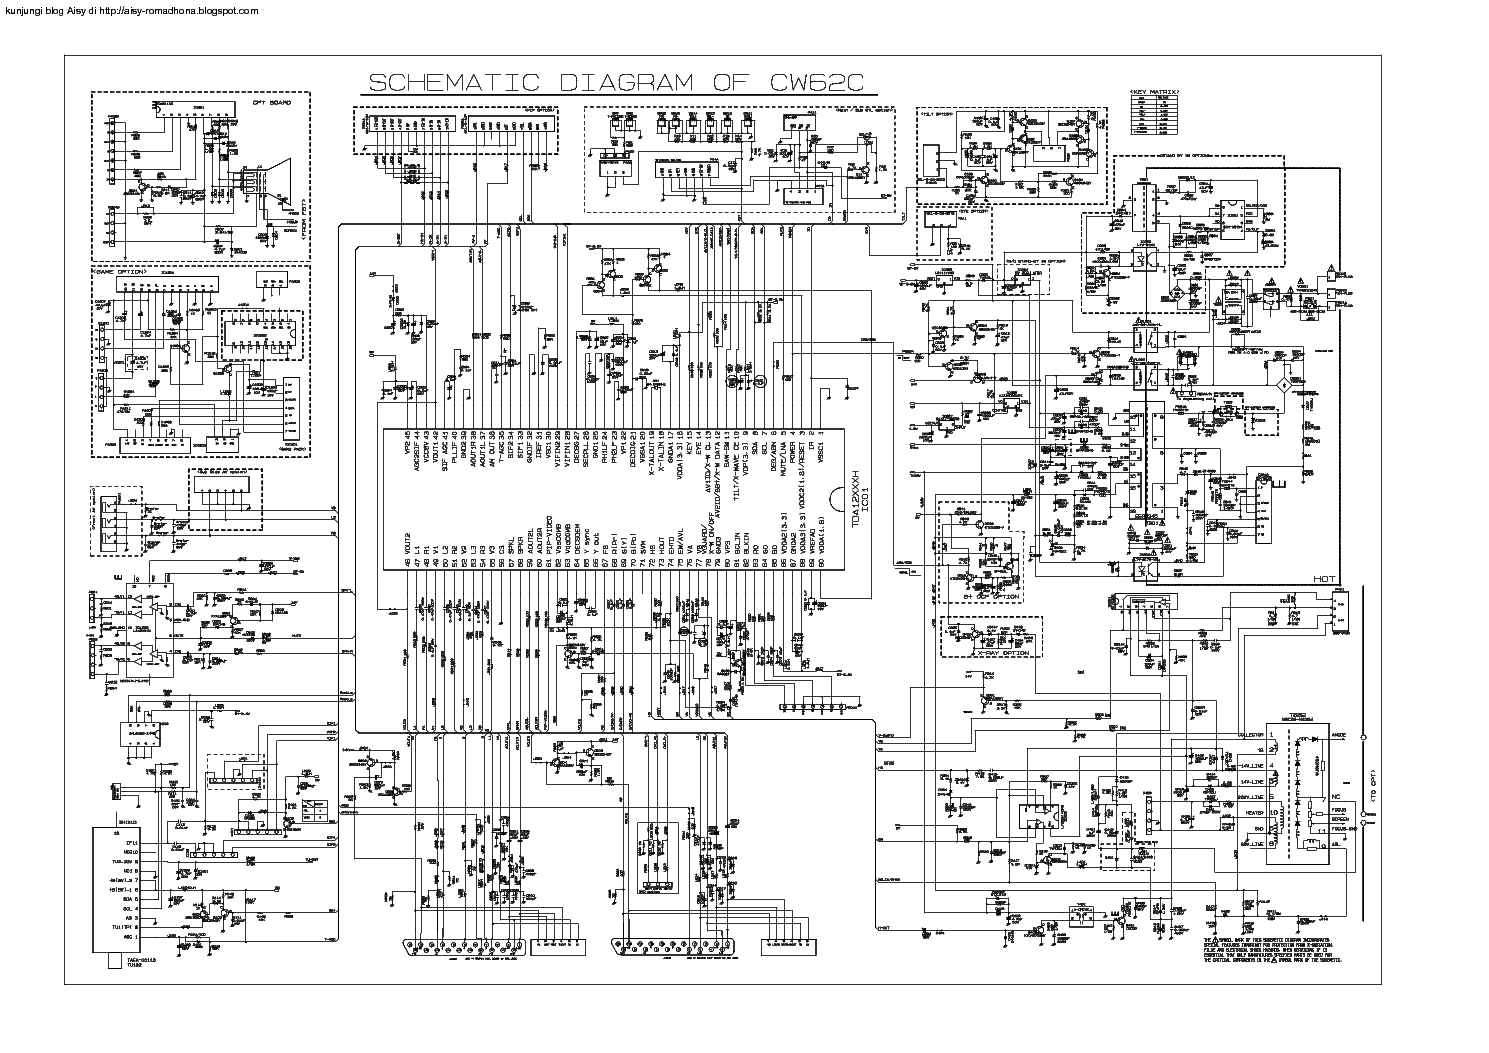 LG 29FS4RK-L1 CHASSIS CW62C SCH service manual (1st page)